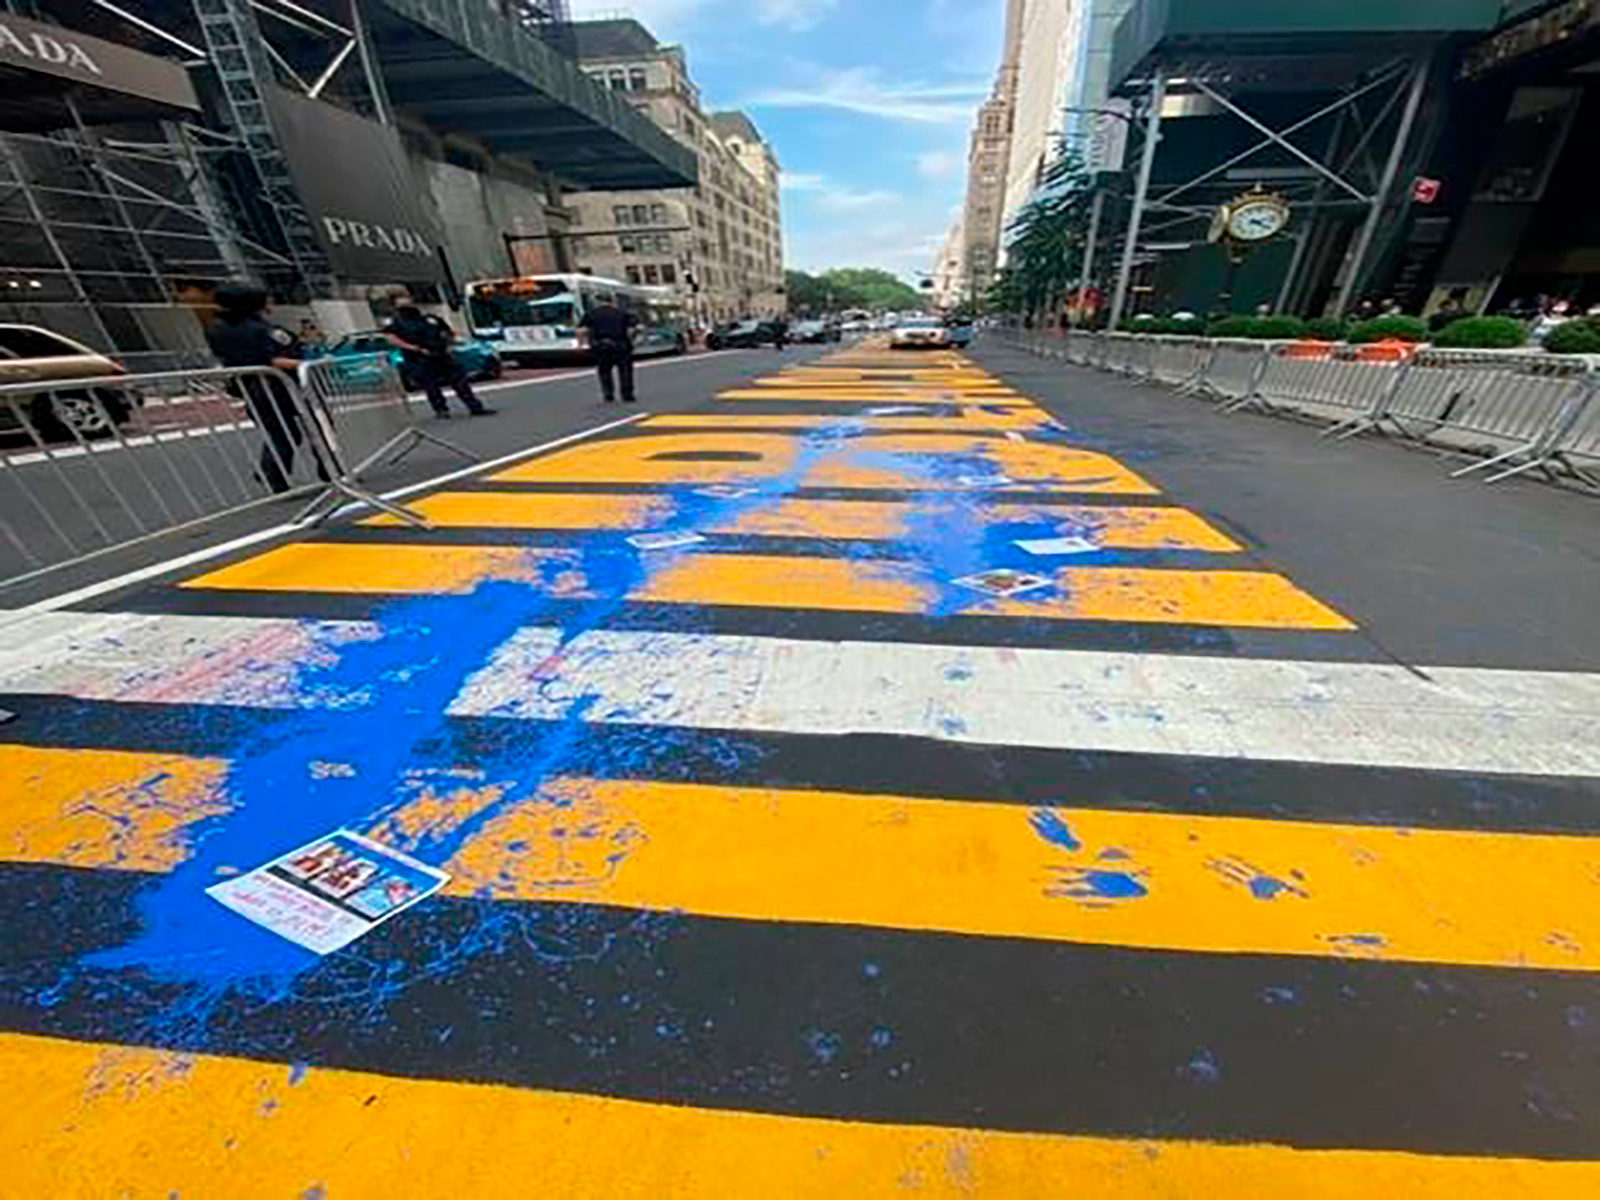 This photo provided by the New York City Police Department shows the Black Lives Matter mural in front of Trump Tower defaced with blue paint, Friday, July 17, 2020 in New York. (New York Police Department via AP)